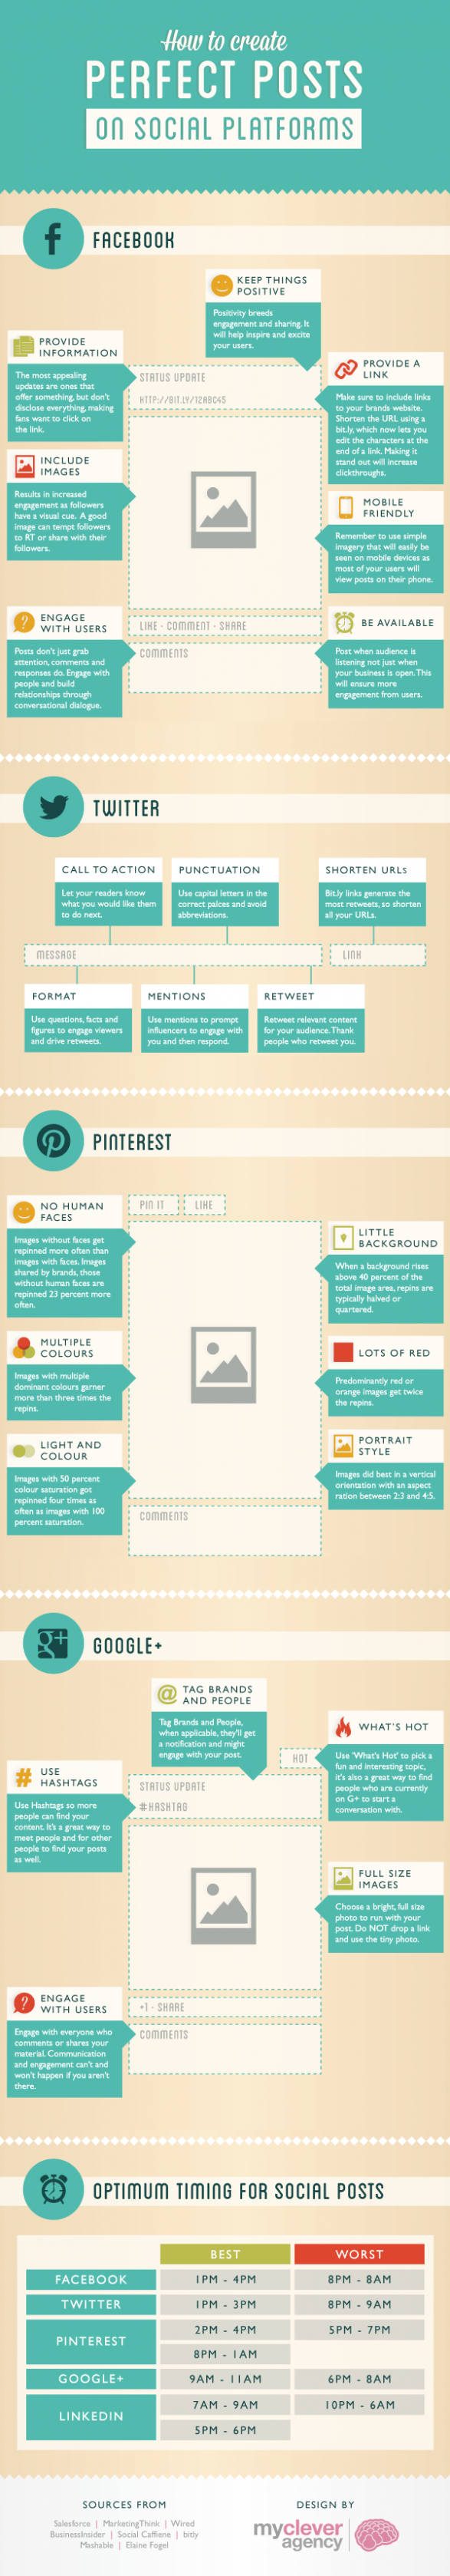 How To Create The Perfect Pinterest, Google+, Facebook & Twitter Posts